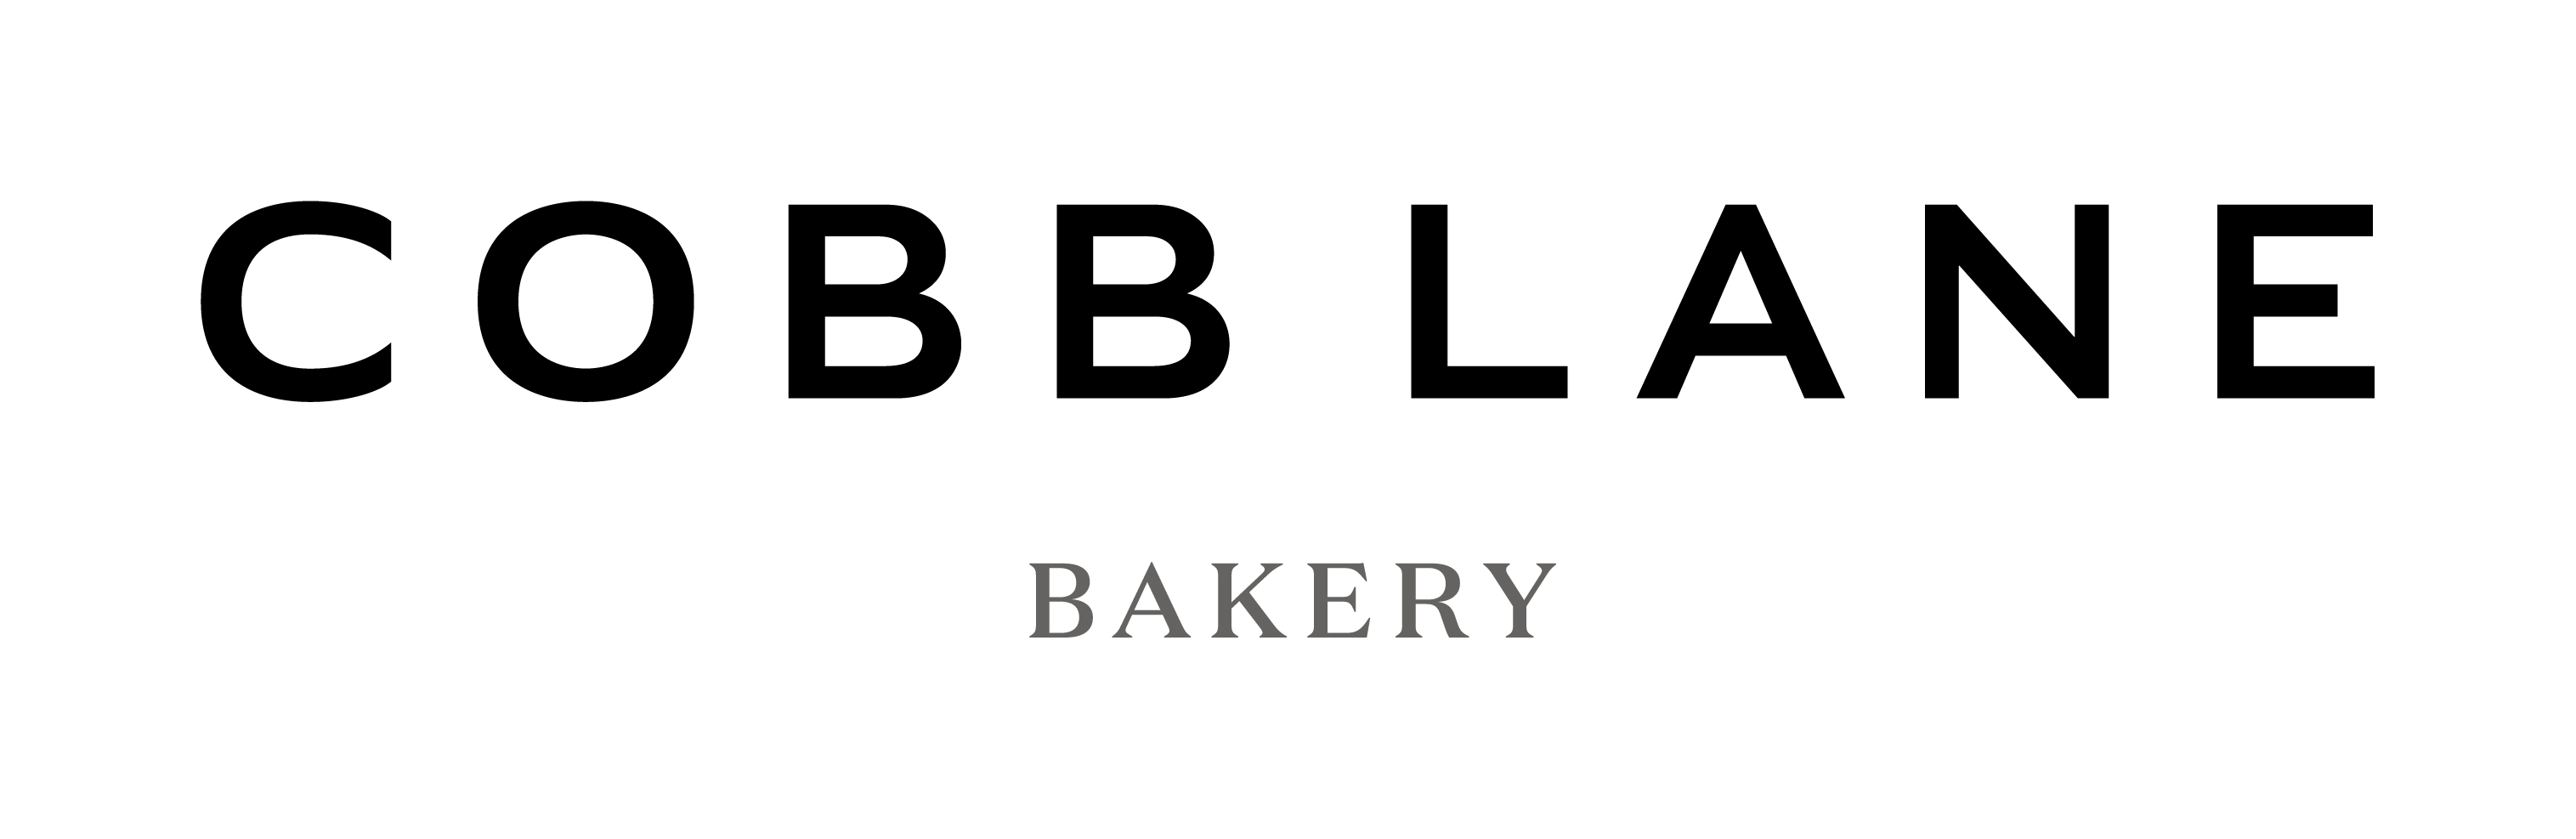 Cobb Lane Bakery